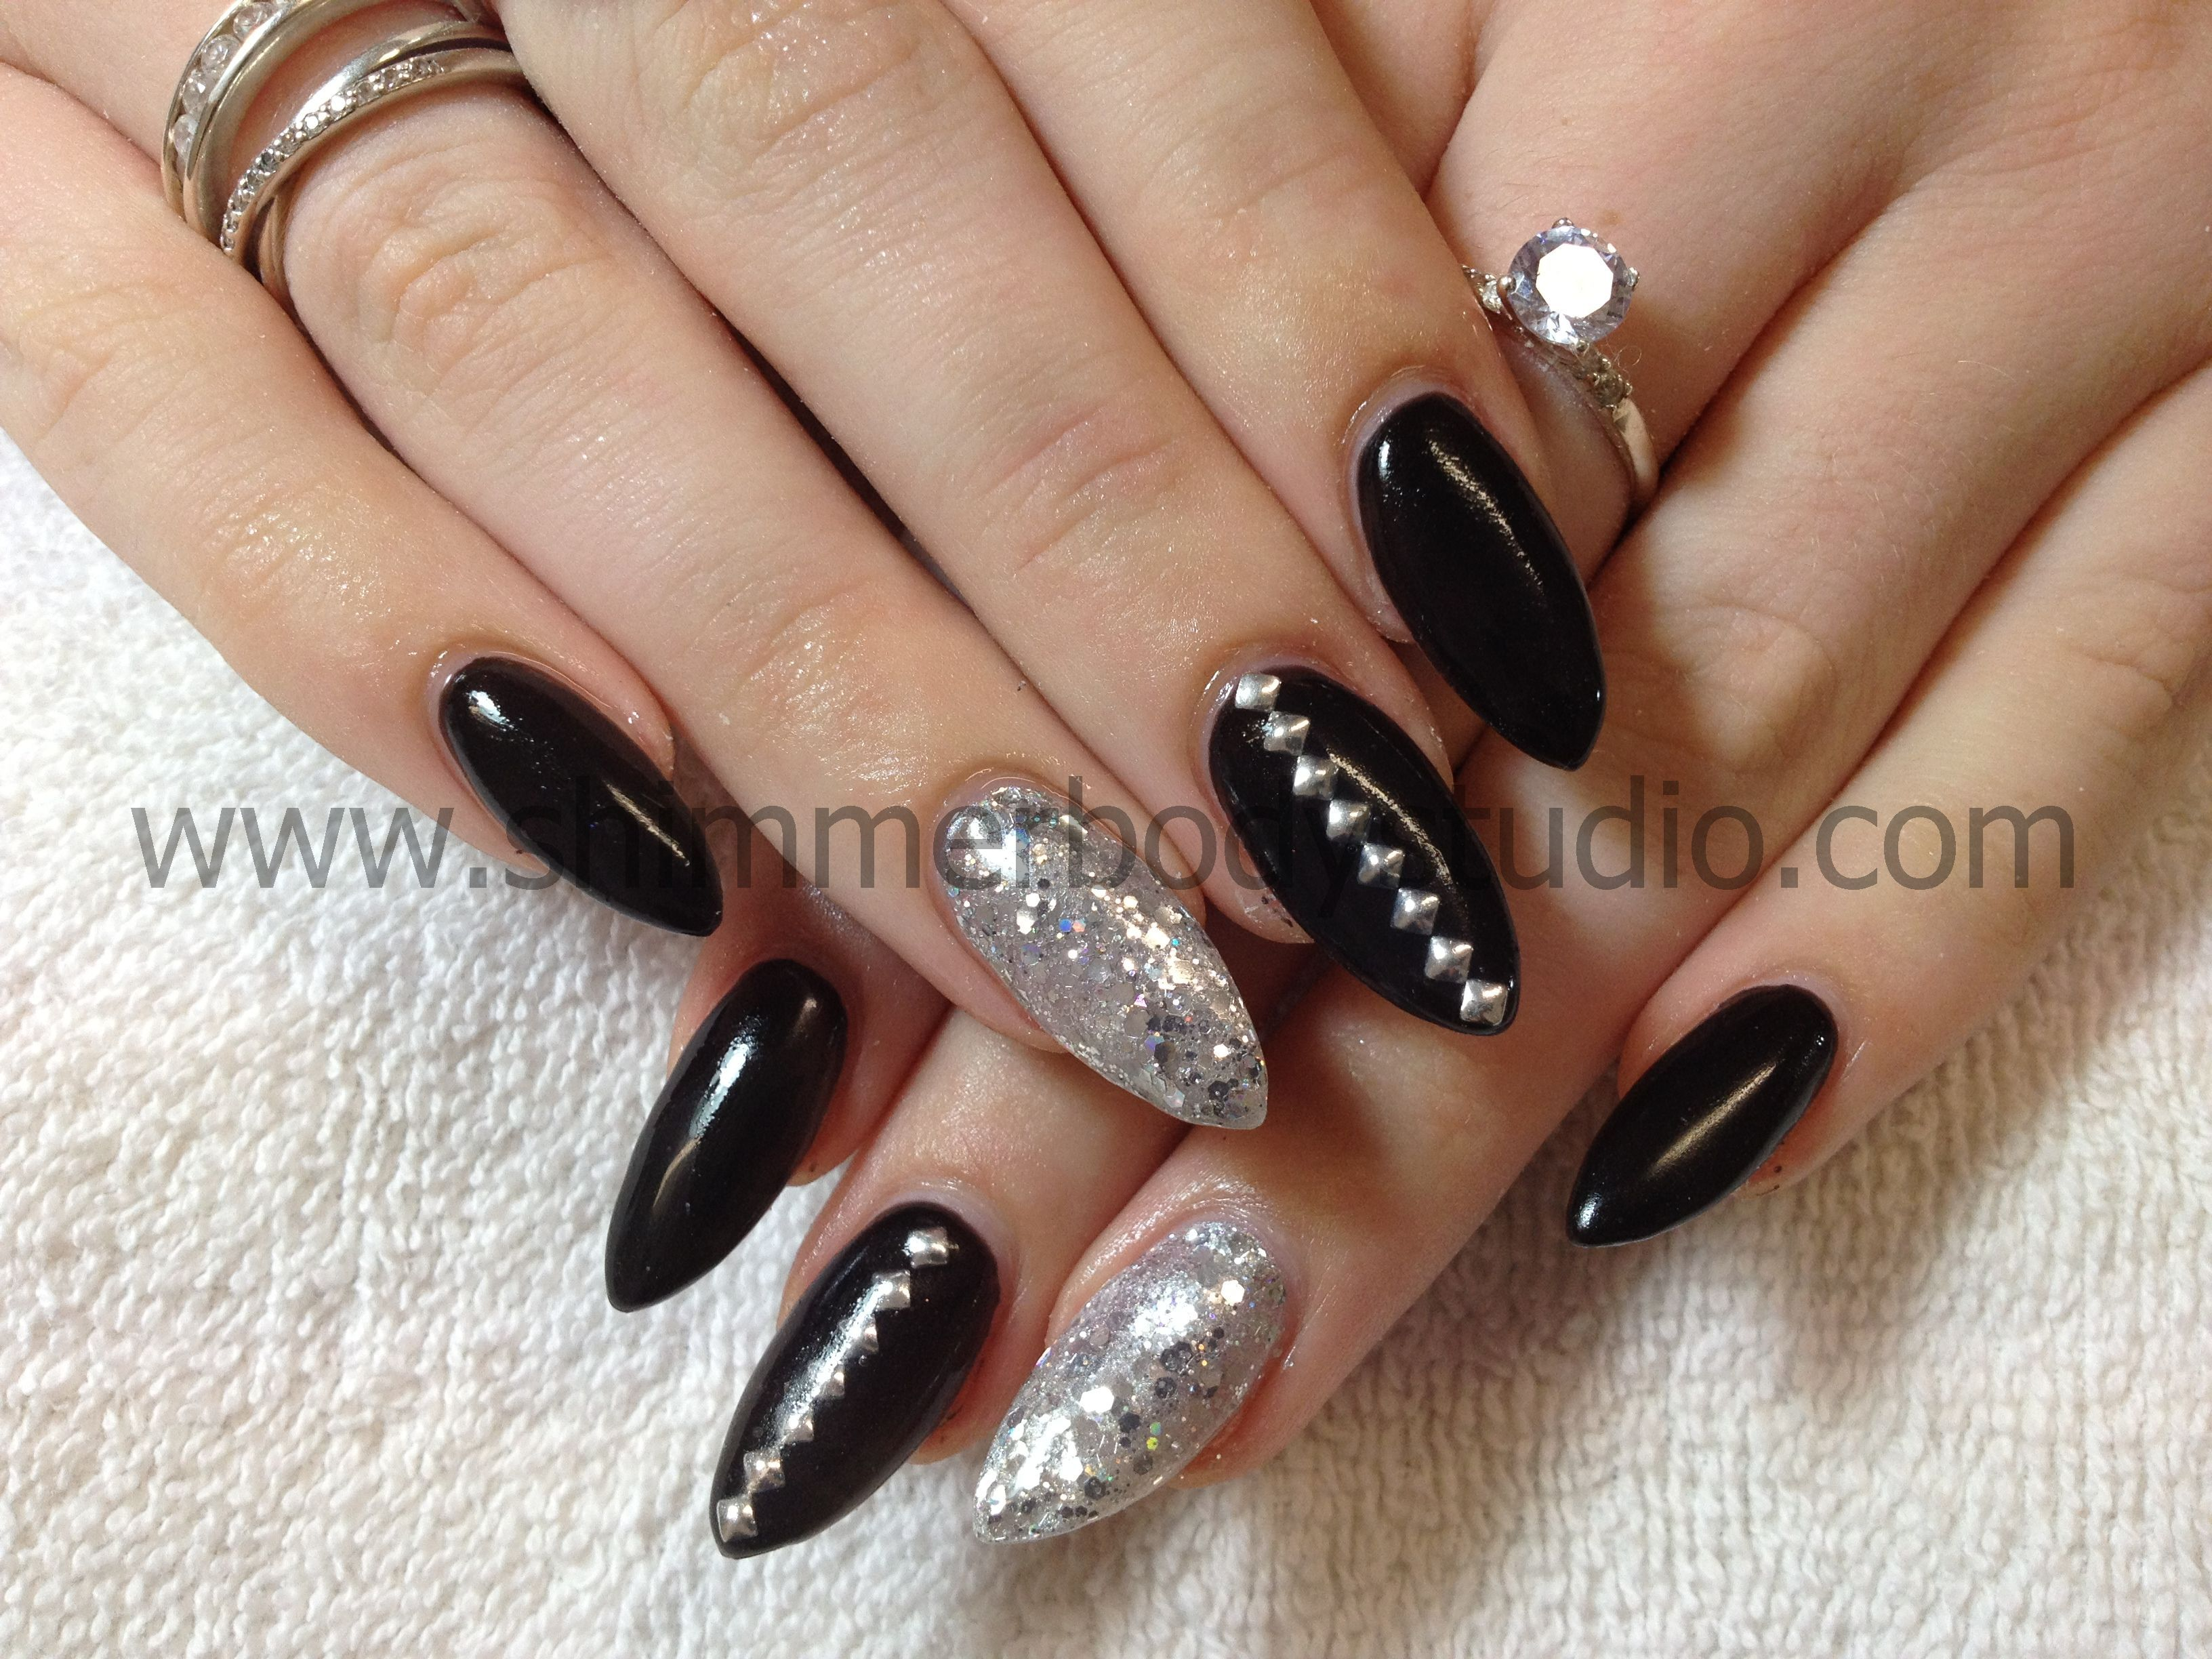 Gel nails pointed nails almond nails stiletto nails glitter gel nails pointed nails almond nails stiletto nails glitter nail art prinsesfo Gallery